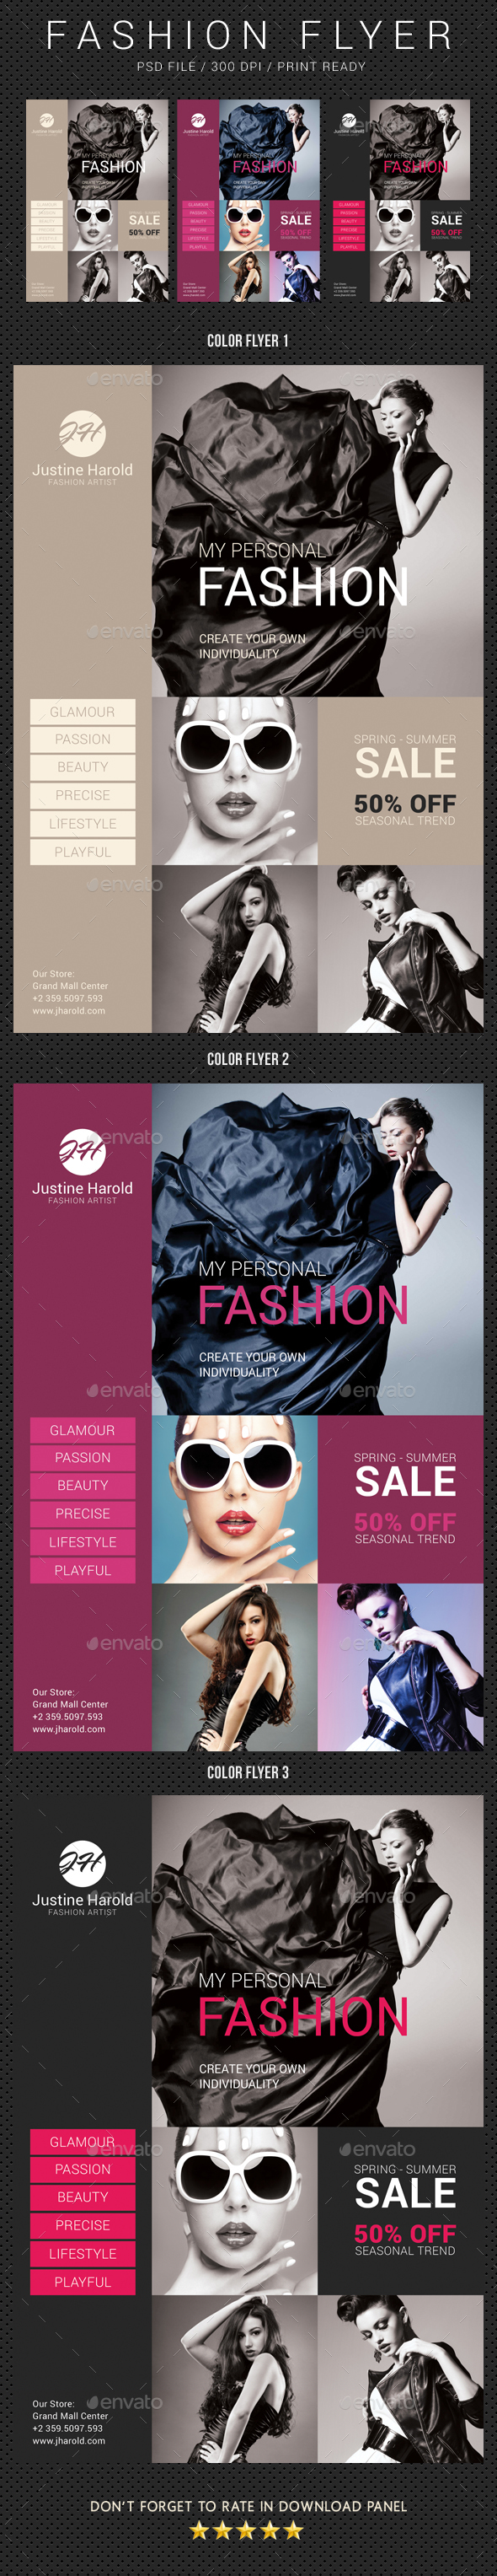 Fashion Flyer 06